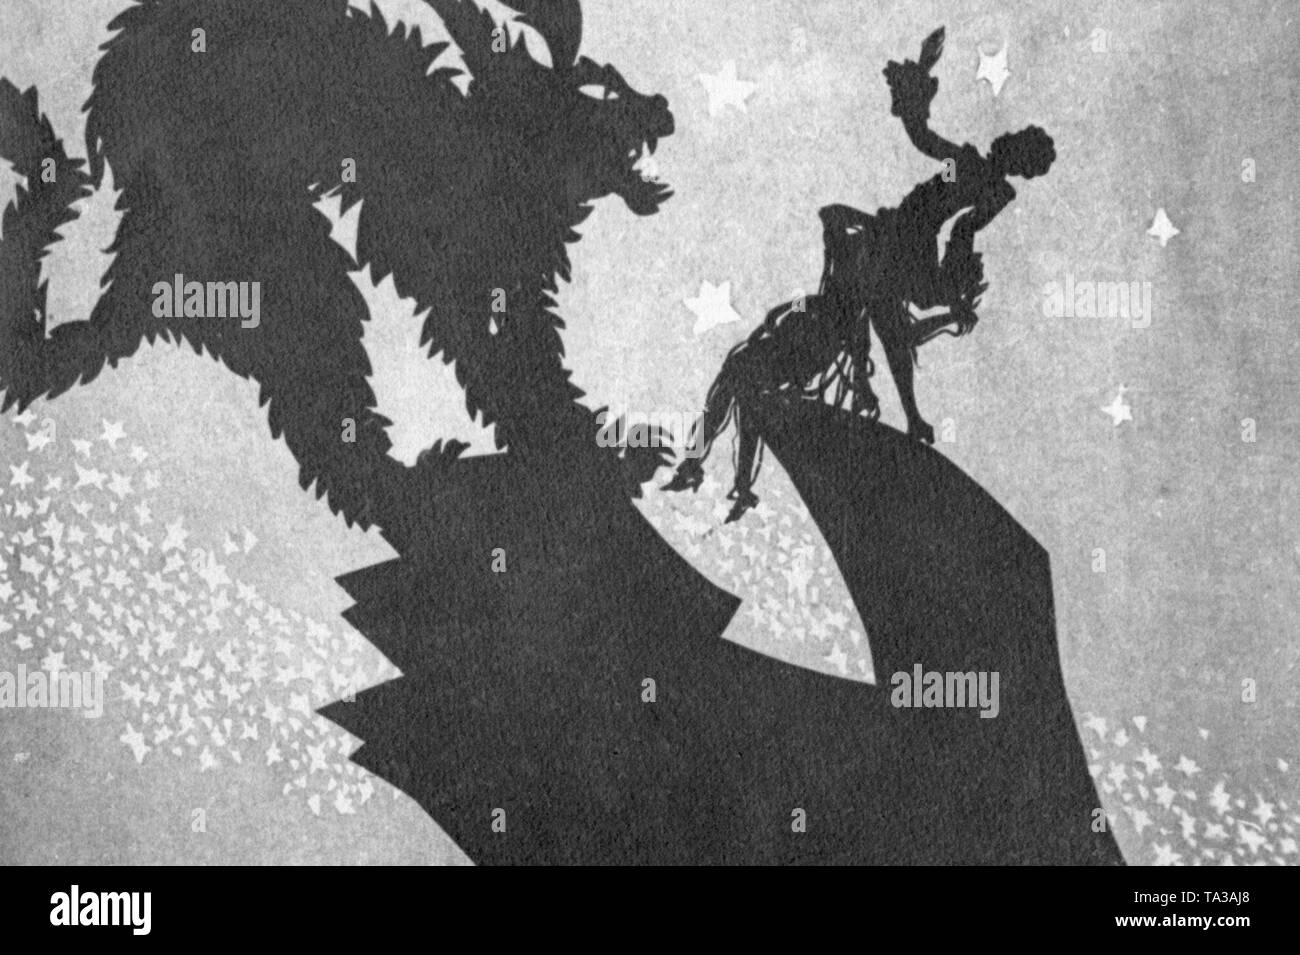 This photo shows a scene from the silhouette film 'Amor und das standhafte Liebespaar' by Charlotte Reiniger. The silhouette film, also known as silhouette animation, is a technique of animated film in which silhouettes are put together on a lighted glass plate in front of a white or black background to form a film. The result is the silhouette film, inspired by shadow theater and the pictorial techniques of silhouette cutting. - Stock Image